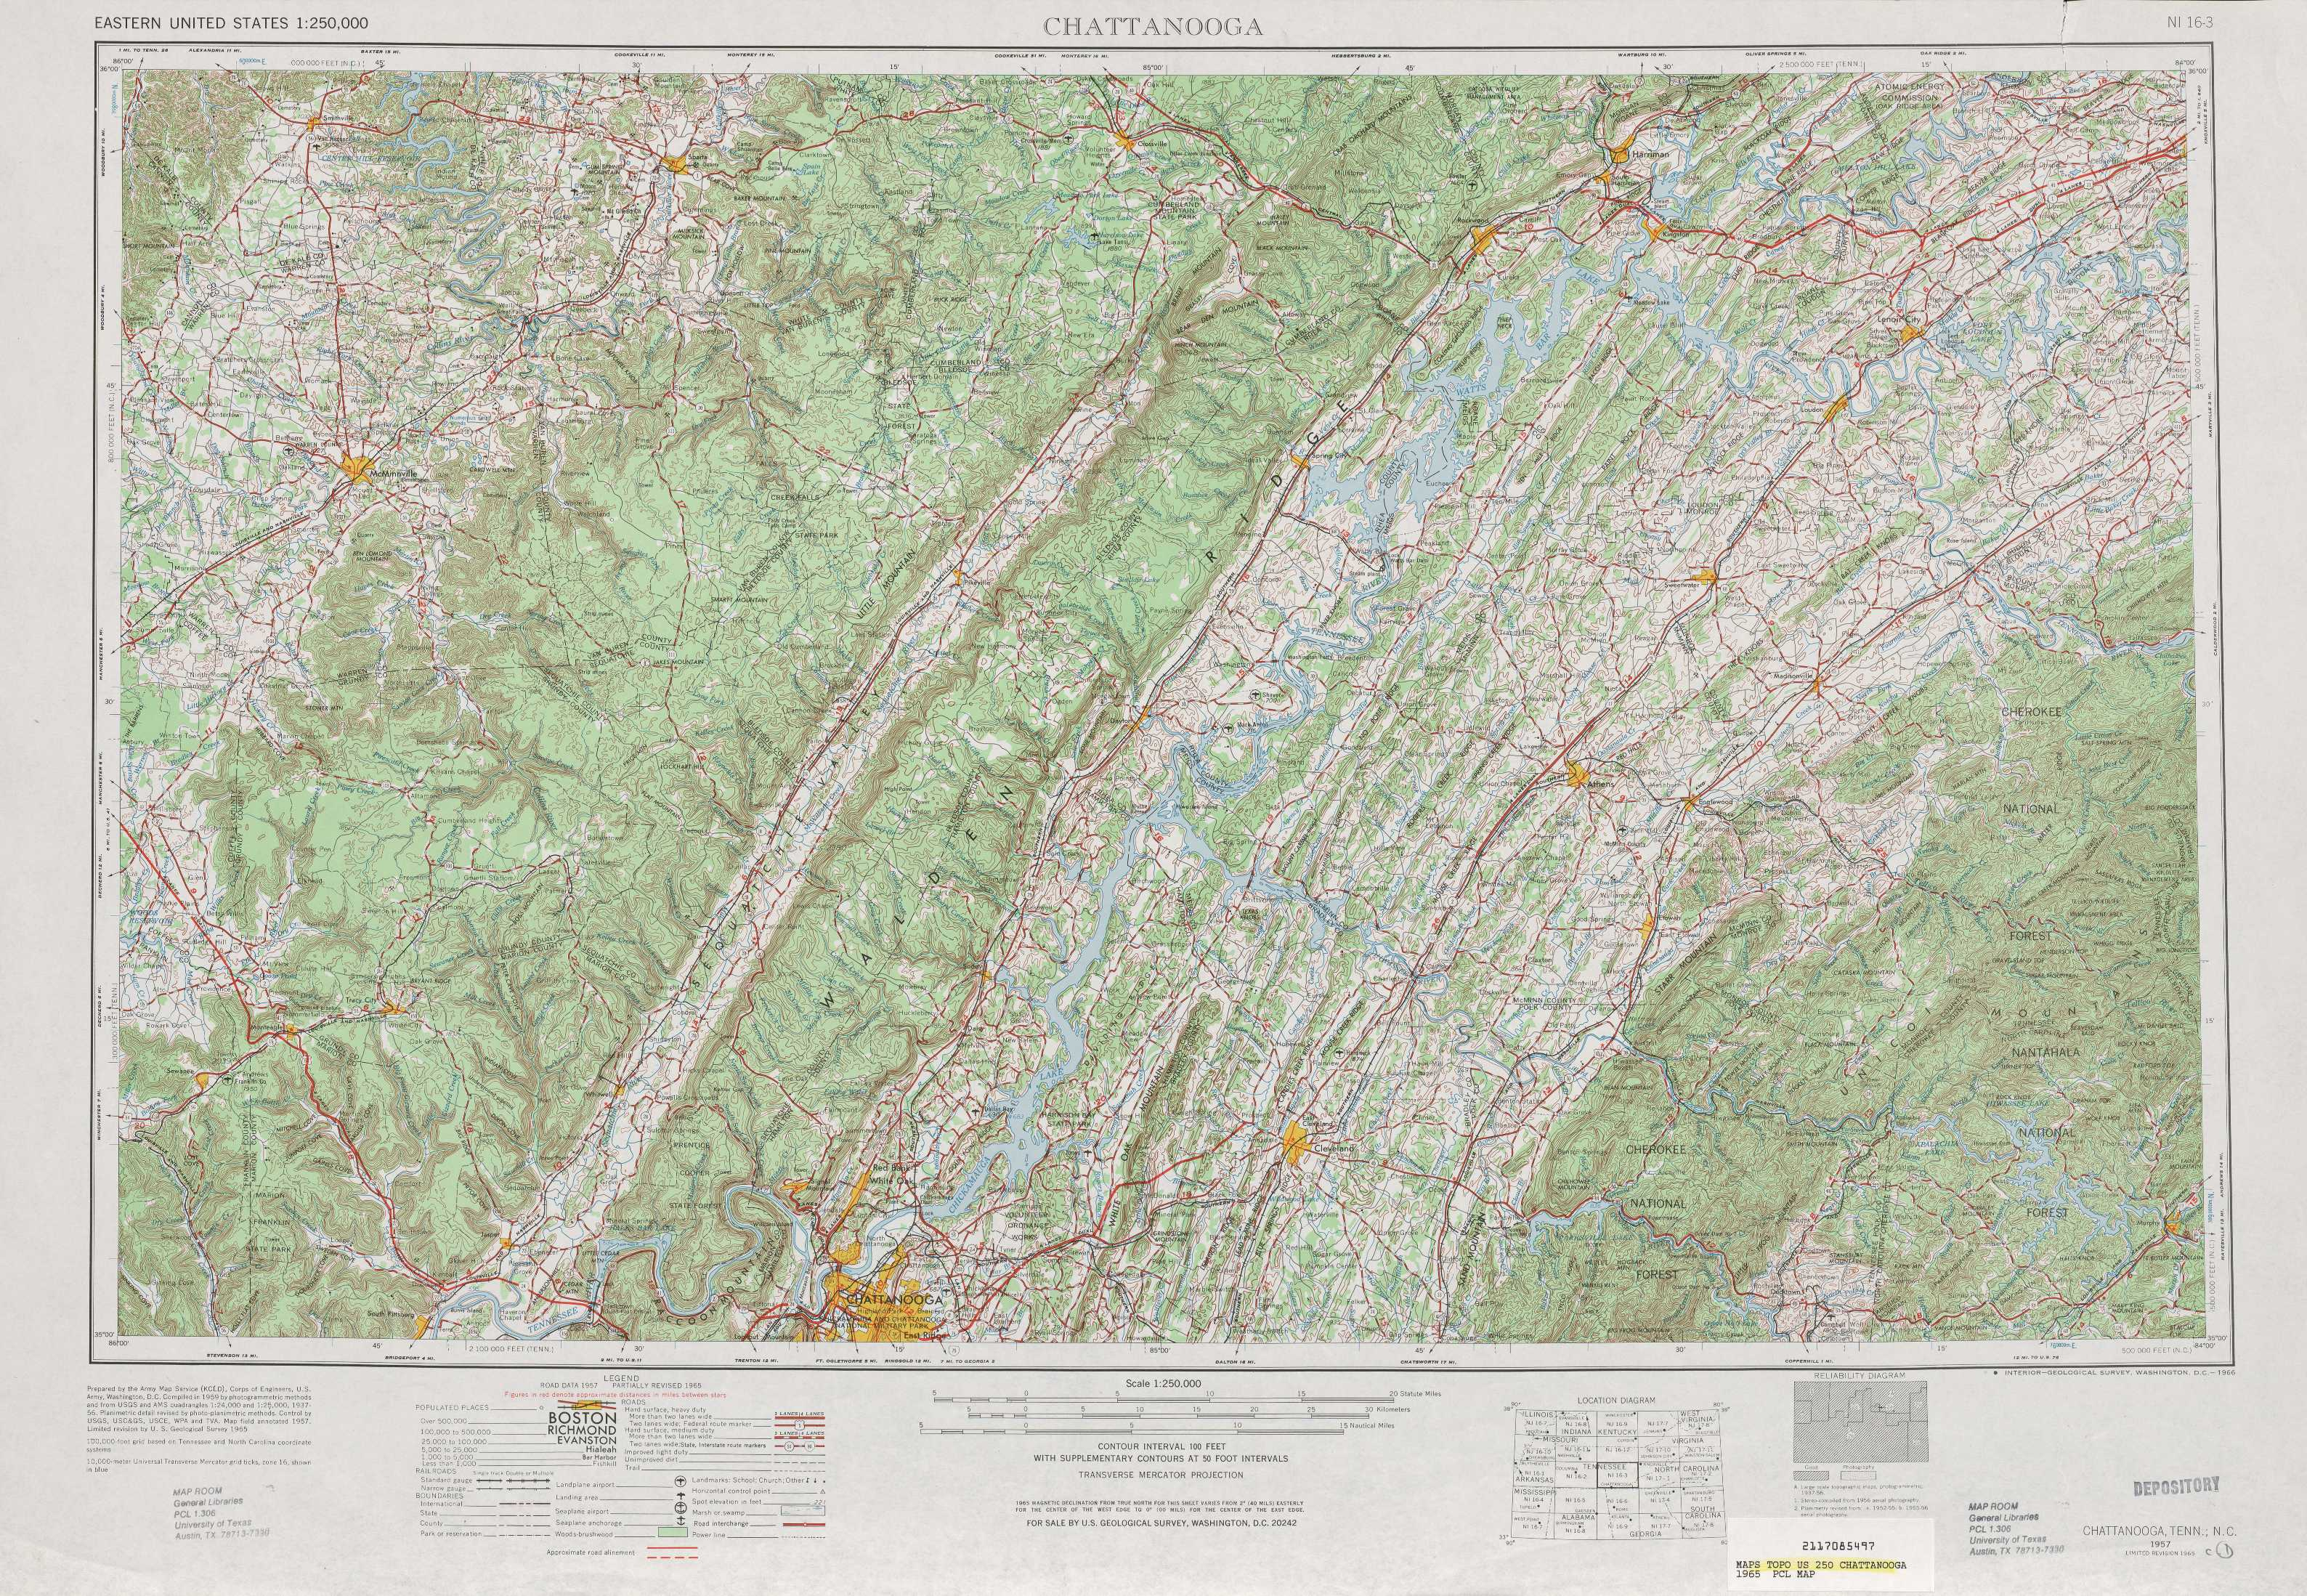 Chattanooga topographic maps TN NC USGS Topo Quad 35084a1 at 1